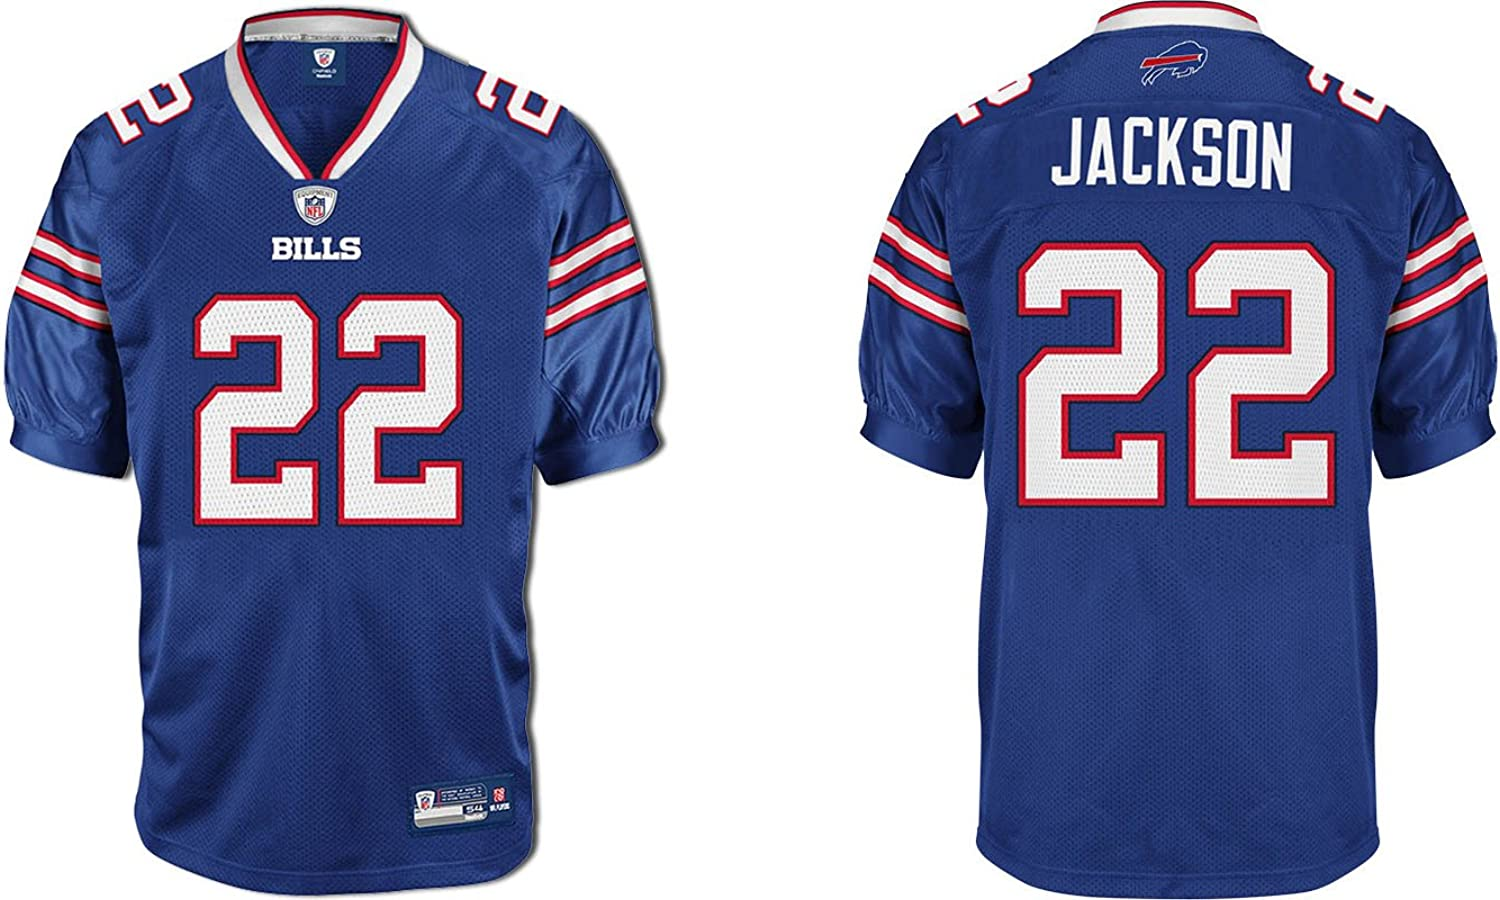 nfl jersey size recommendations